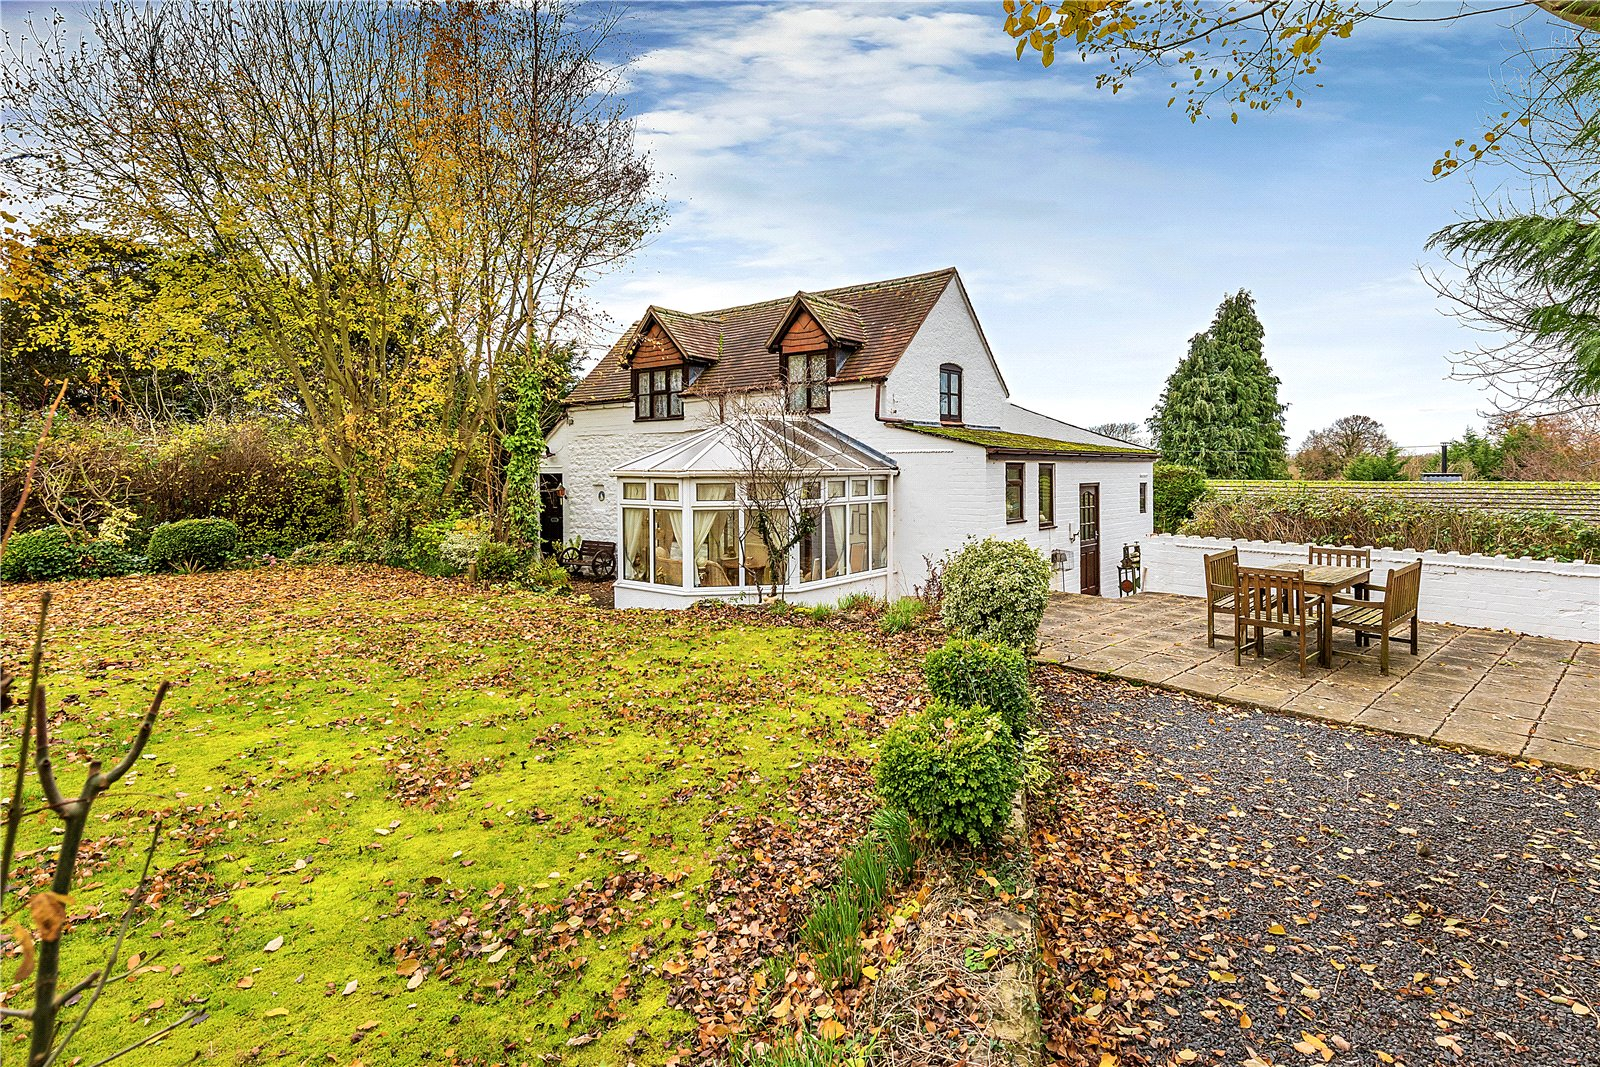 3 Bedrooms Detached House for sale in 31 Copse Hill Lane, Homer, Much Wenlock, Shropshire, TF13